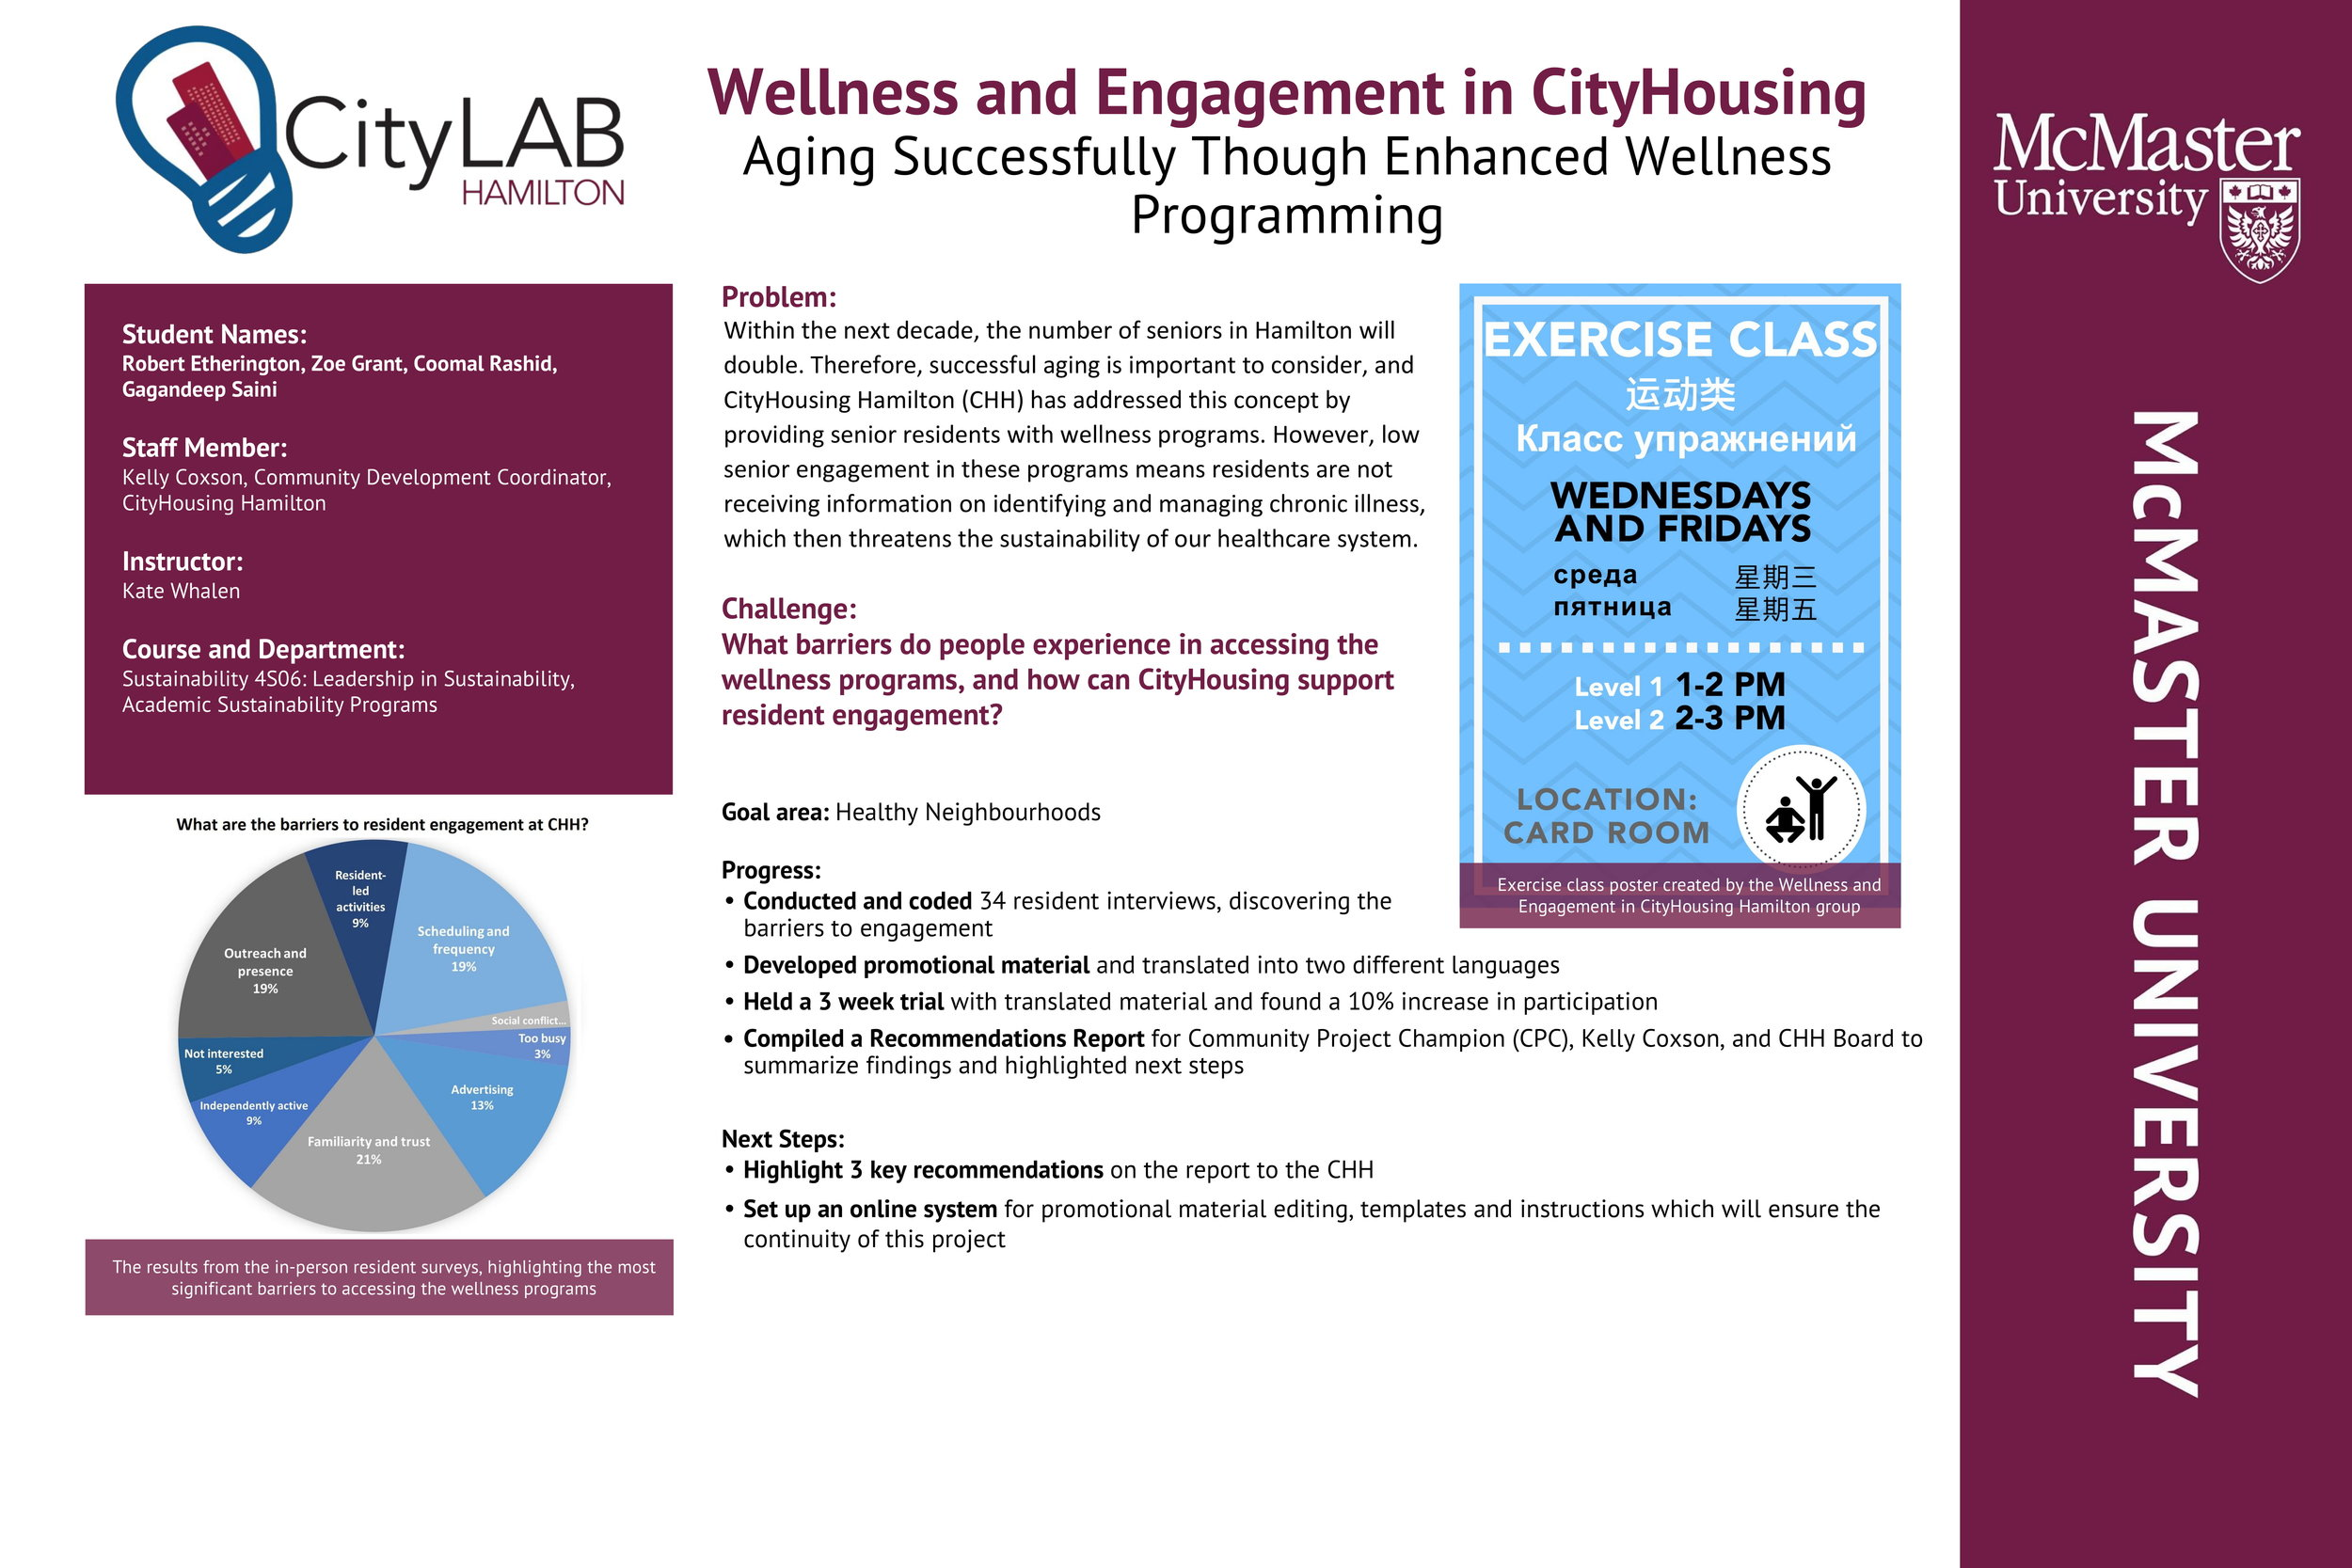 Wellness and Engagement poster-1.jpg